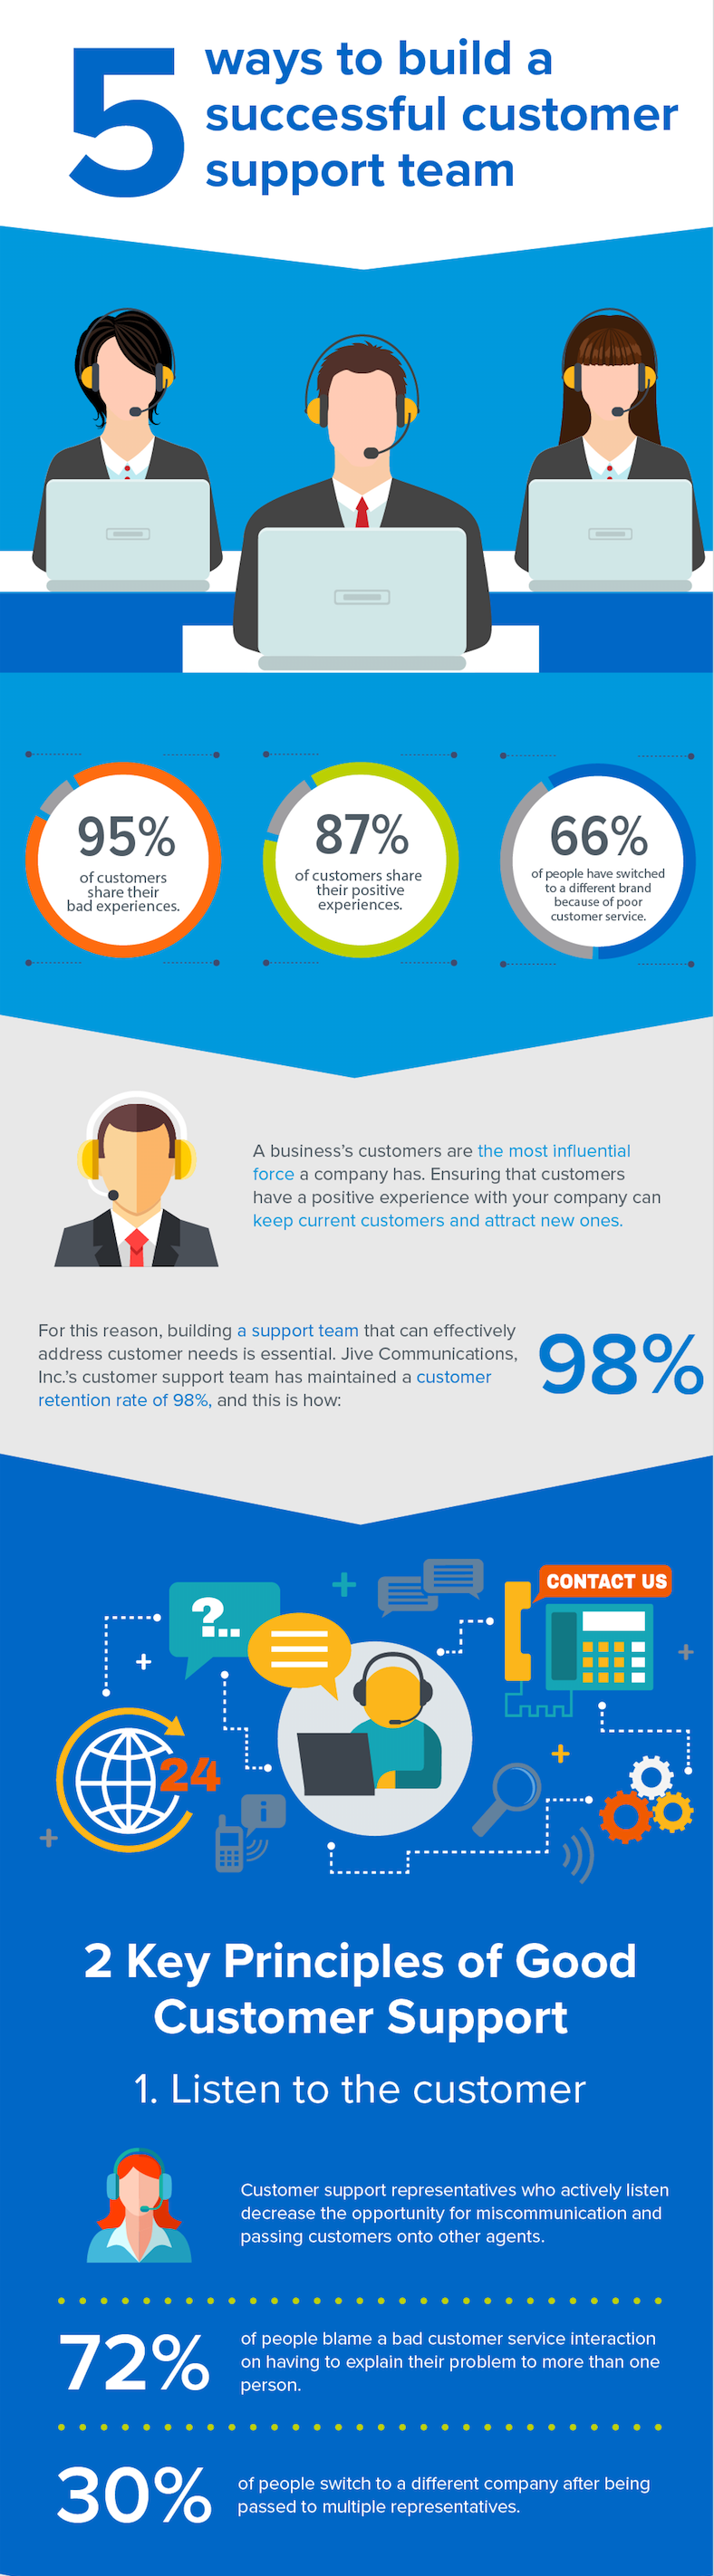 Ways to Build A Successful Customer Support Team Infographic